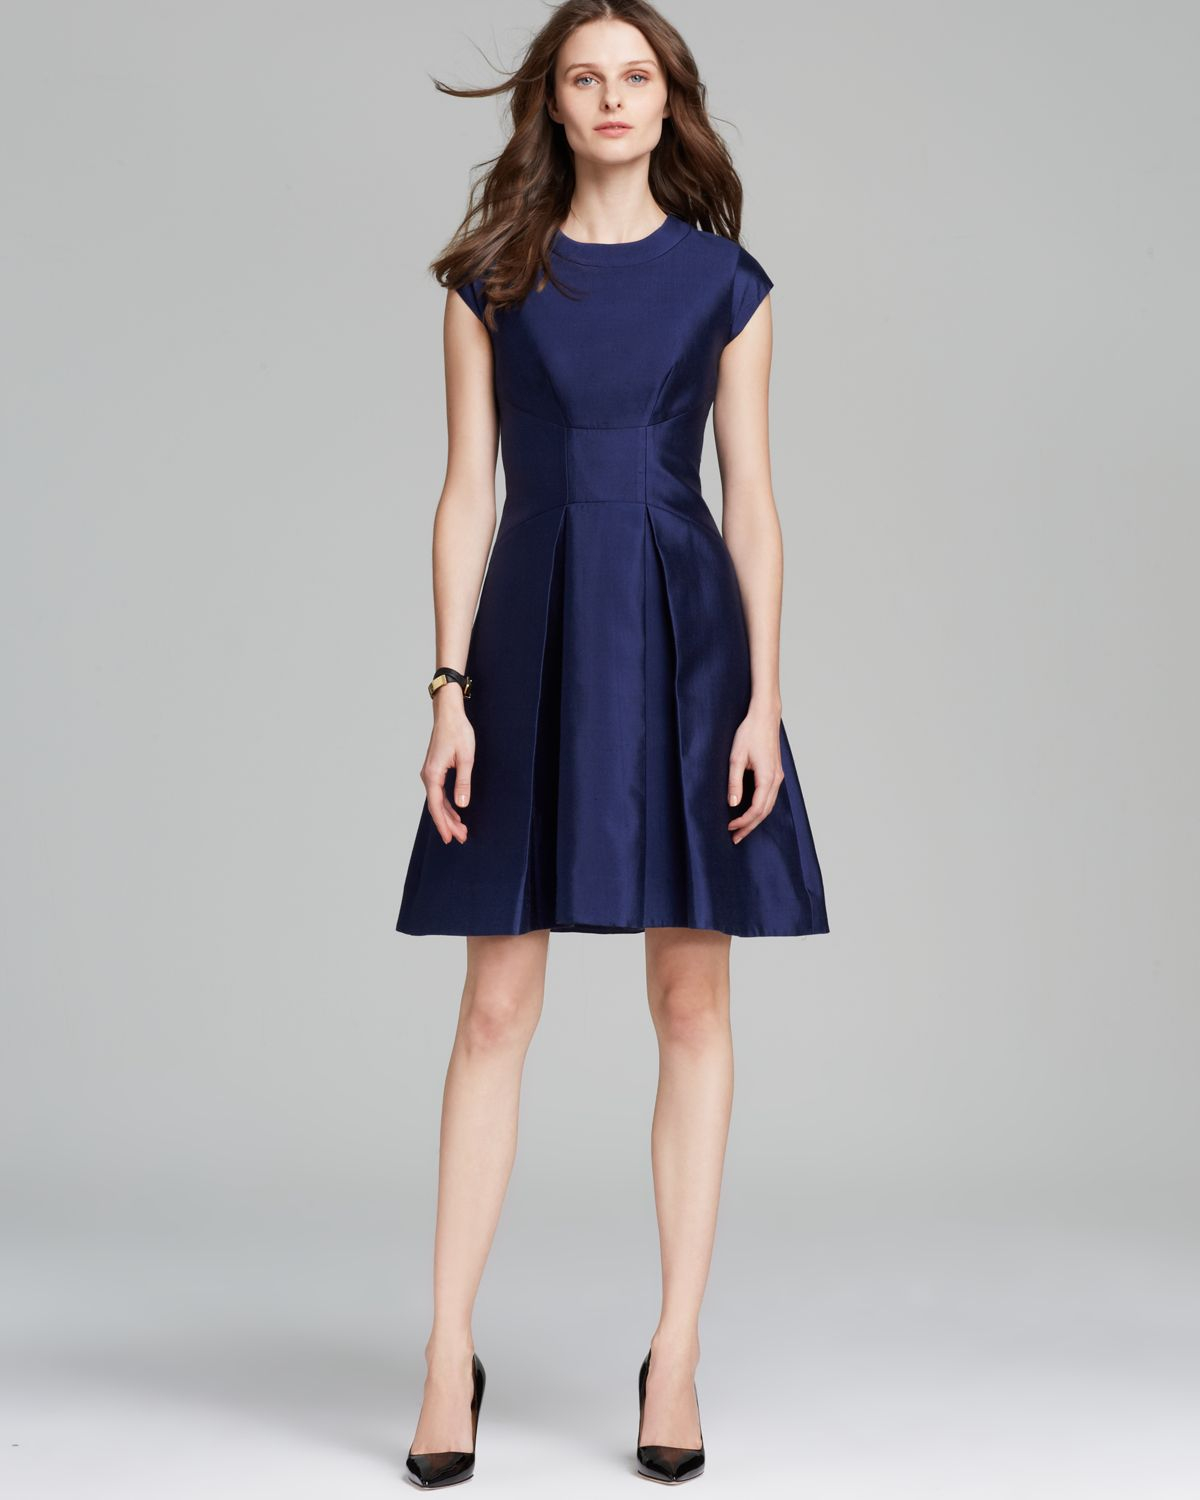 Lyst Kate Spade New York Vail Dress In Blue